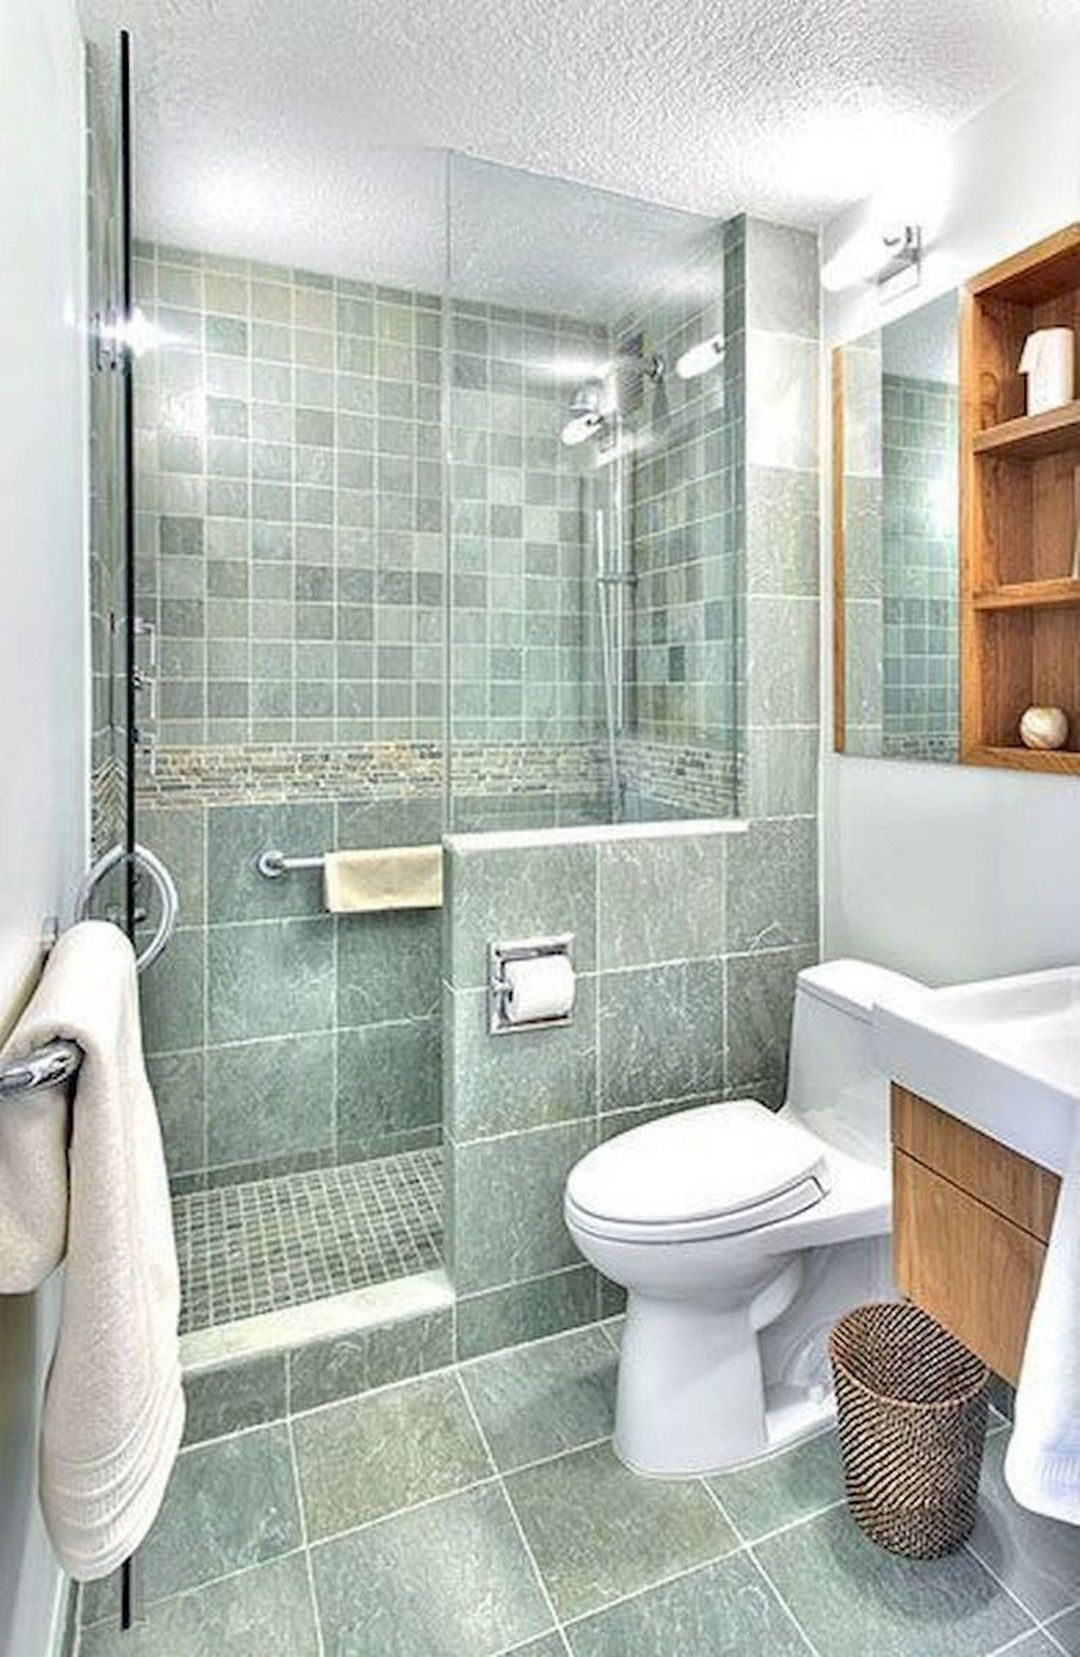 Basement Bathroom Ideas With Best Scheme Small Bathroom Amazing